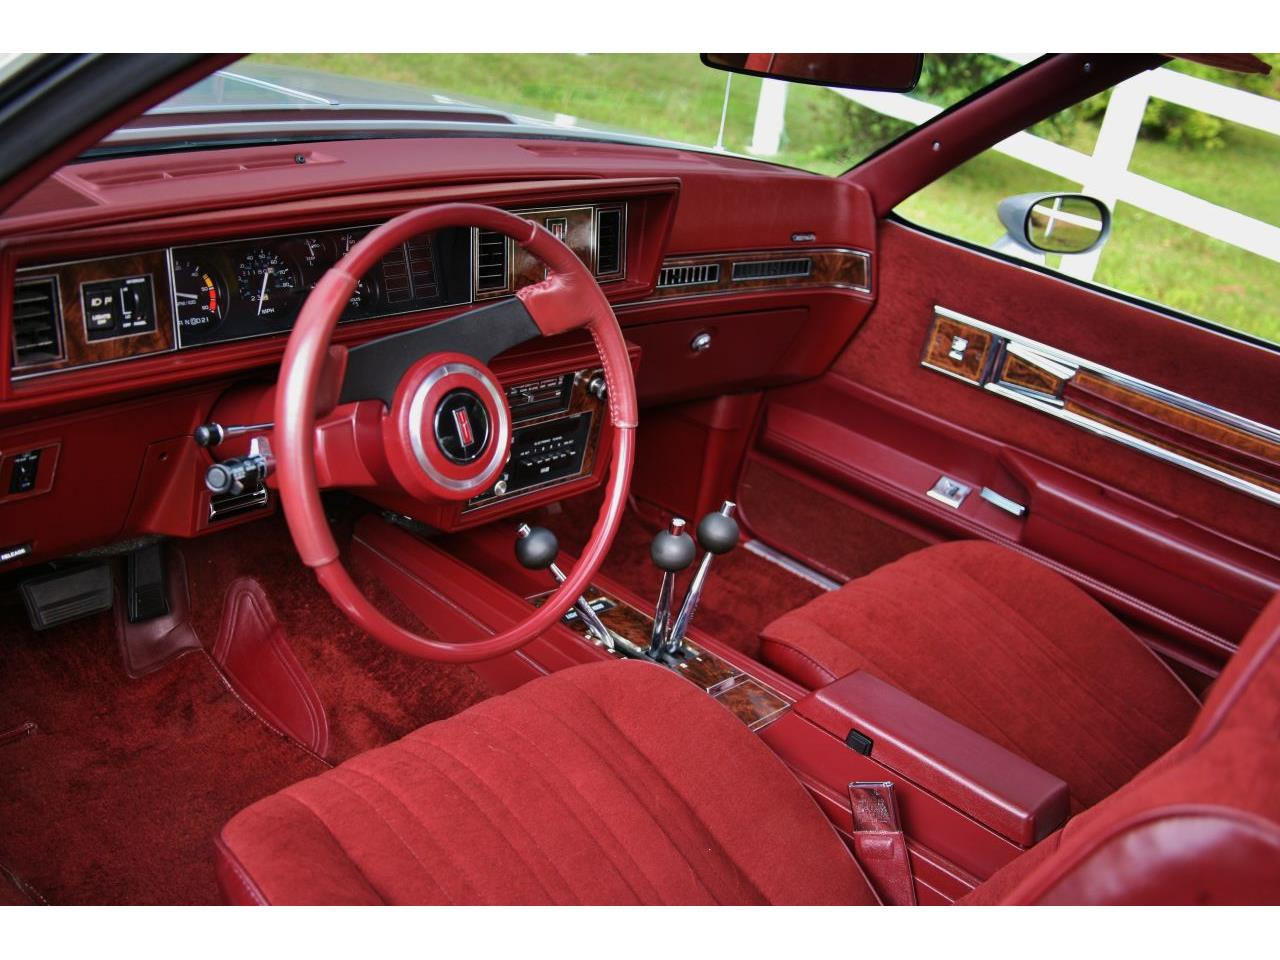 1984 Oldsmobile Cutlass for sale in Old Forge, PA – photo 22